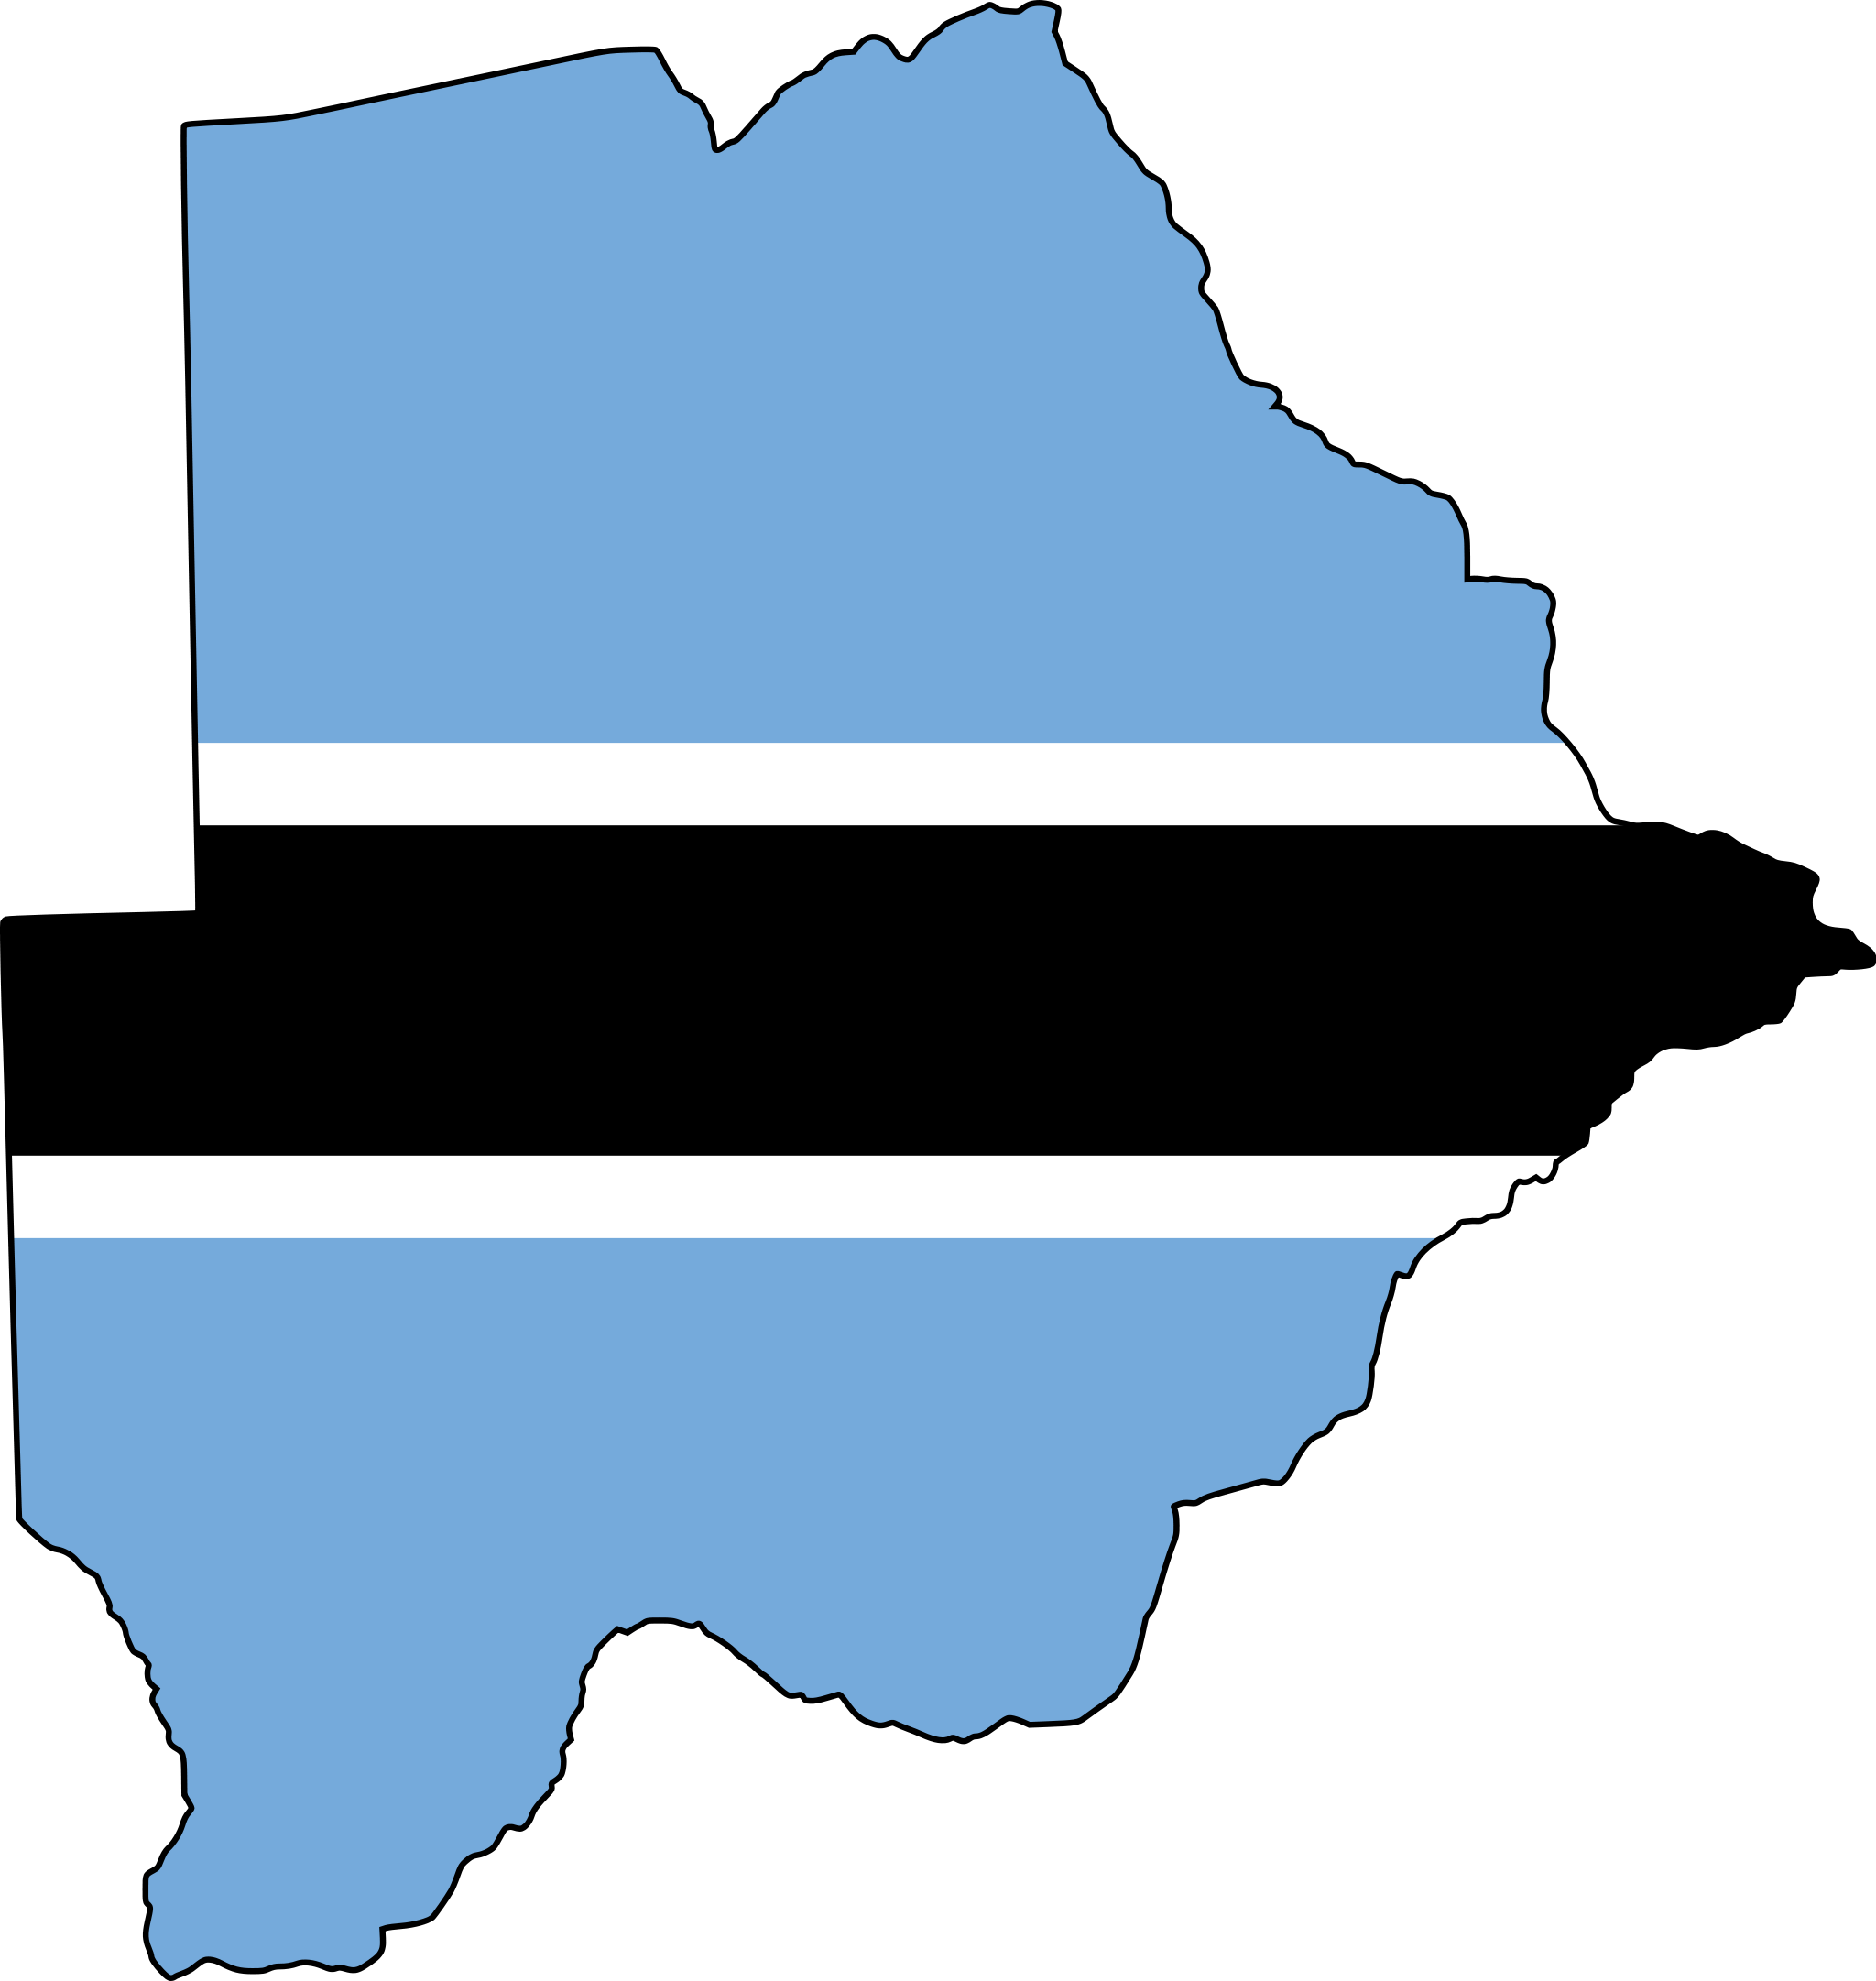 Flag Of Botswana The Symbol Of Water Source And Farming - Botswana map hd